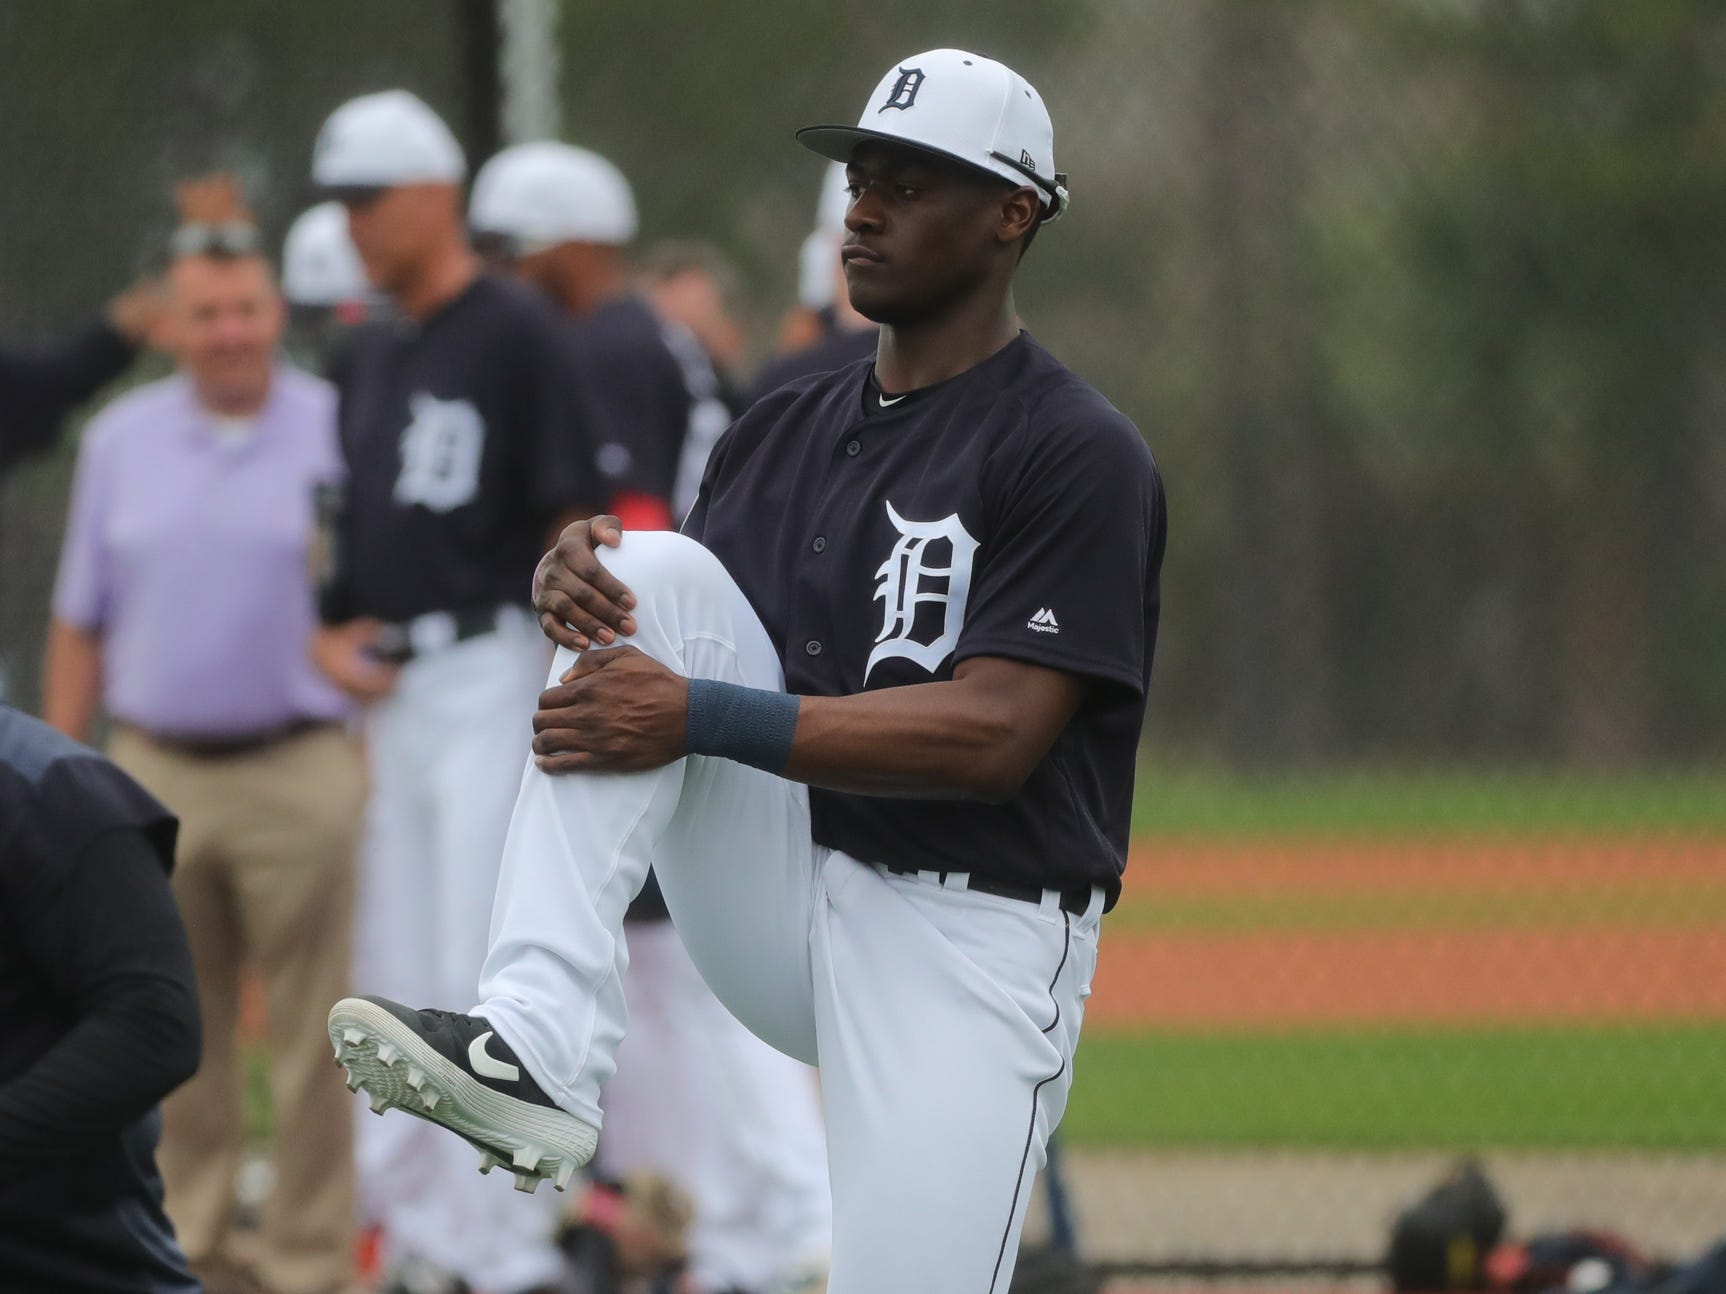 Tigers outfielder Daz Cameron stretches during the first full team spring training practice on Monday, Feb. 18, 2019, at Joker Marchant Stadium in Lakeland, Florida.